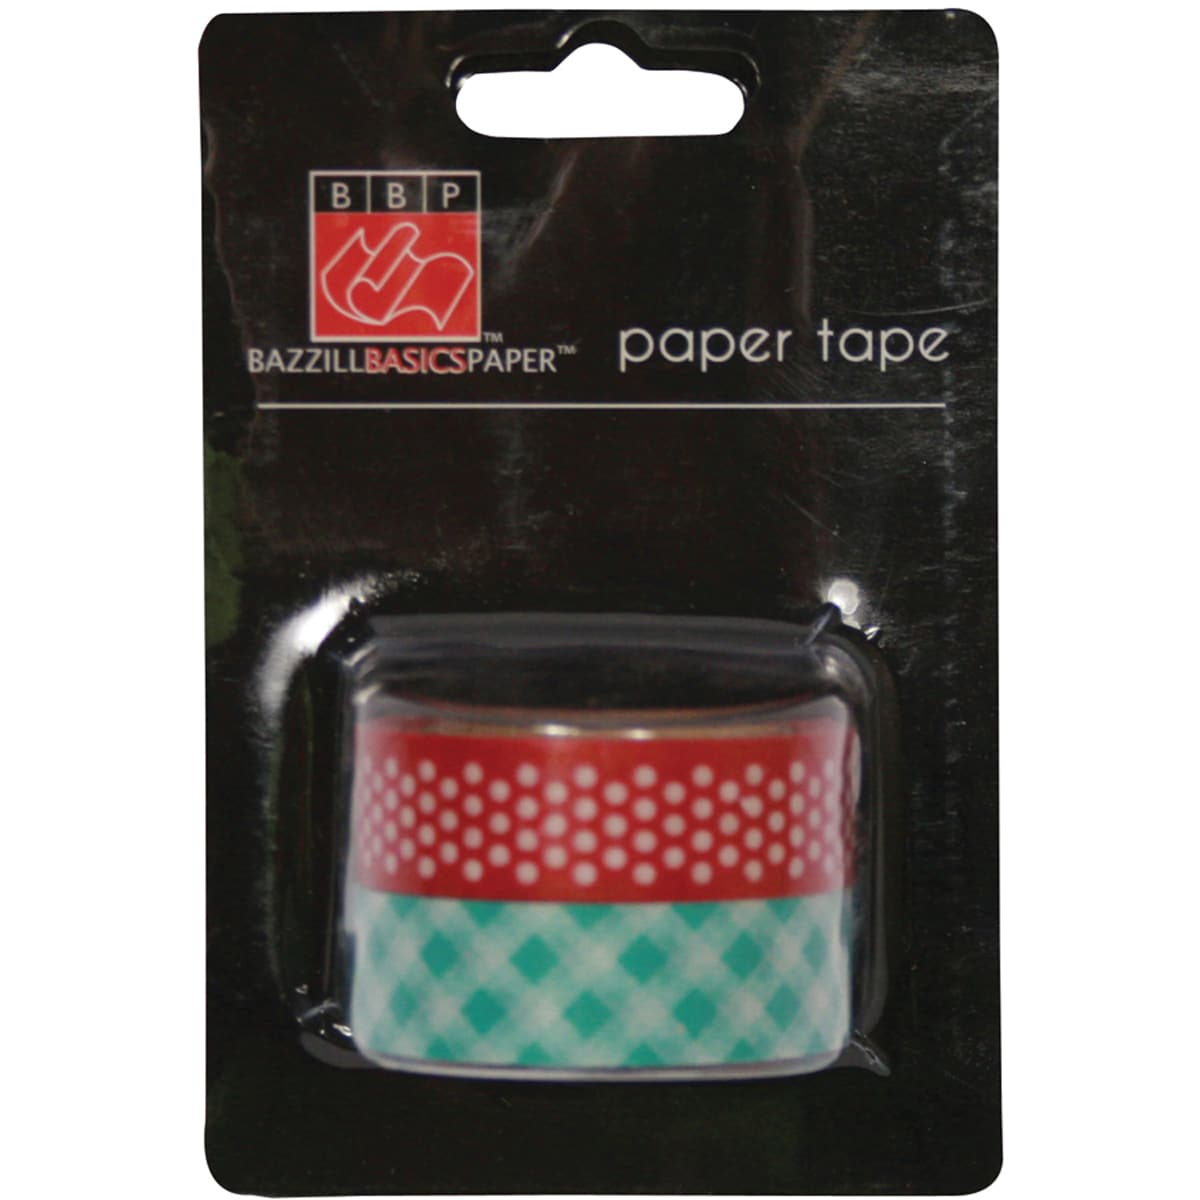 Avalon Paper Tape (Pack of 2) - Thumbnail 0